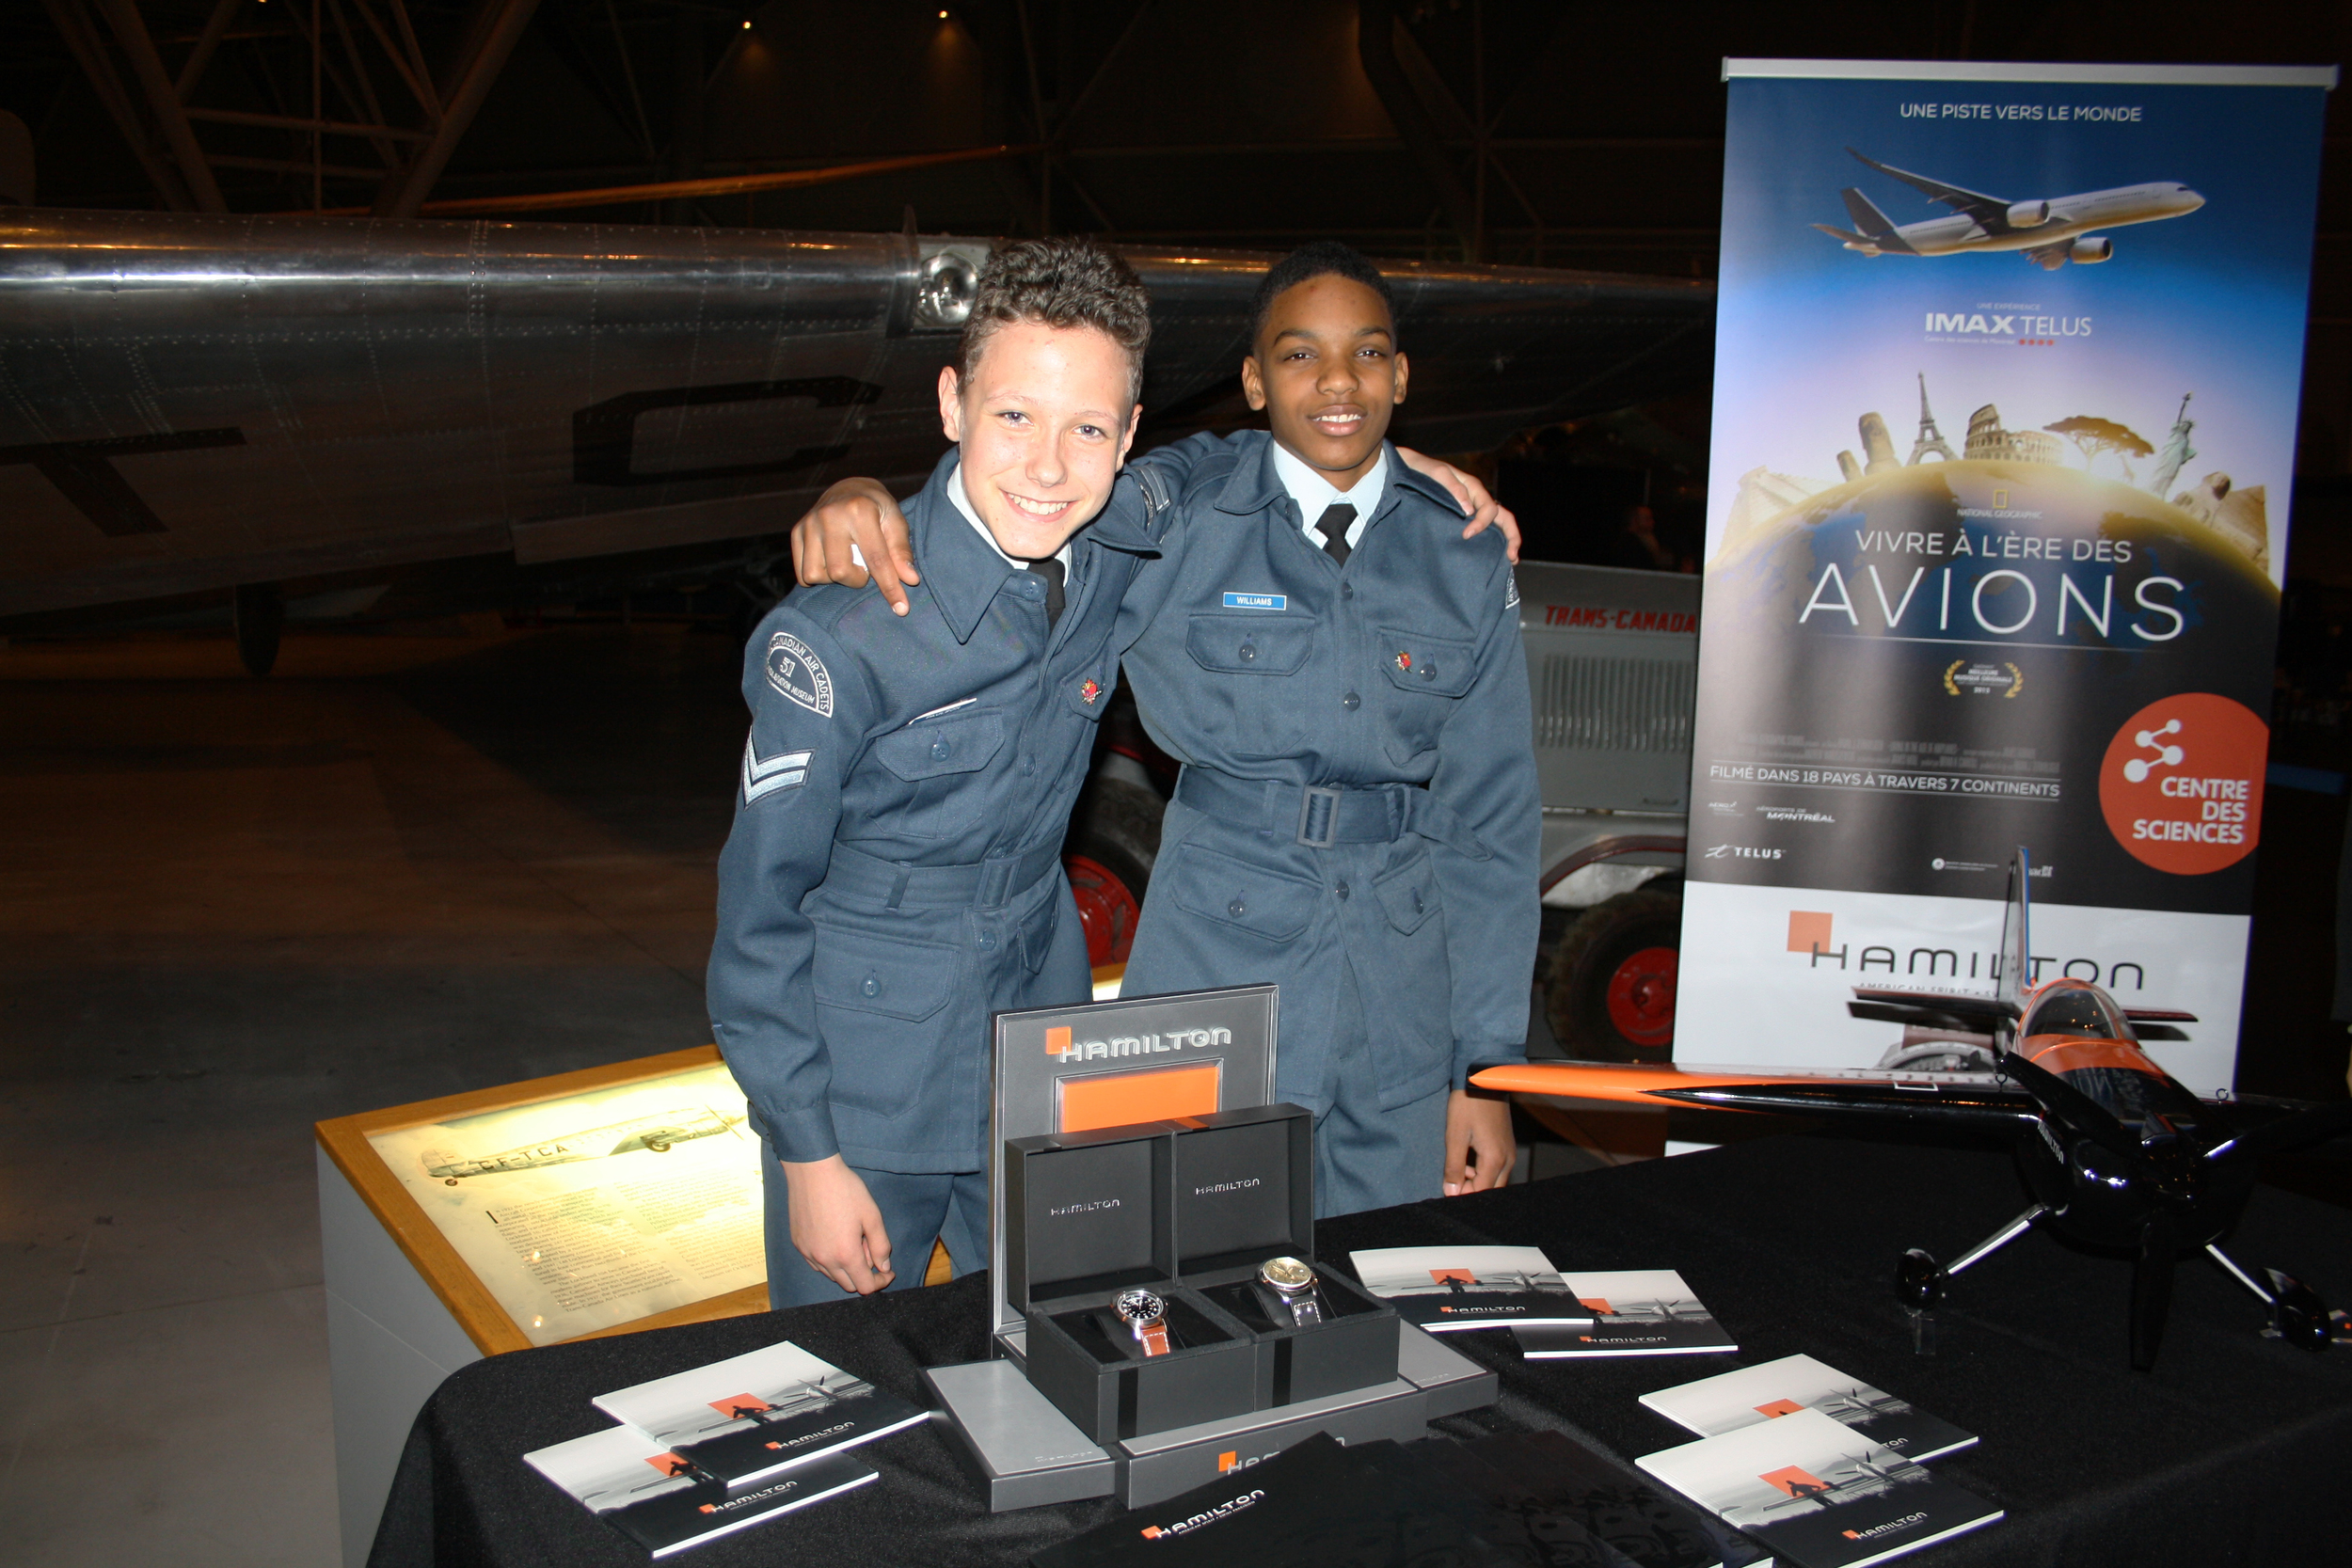 Hamilton Watches, the official timekeeper of the Air Cadet League of Canada, provides each year watches to the 2 top air cadet pilots. Many Air Cadets, like the two young men in the photo, provided their help that evening. (Sitraka Raoelimanohisoa)